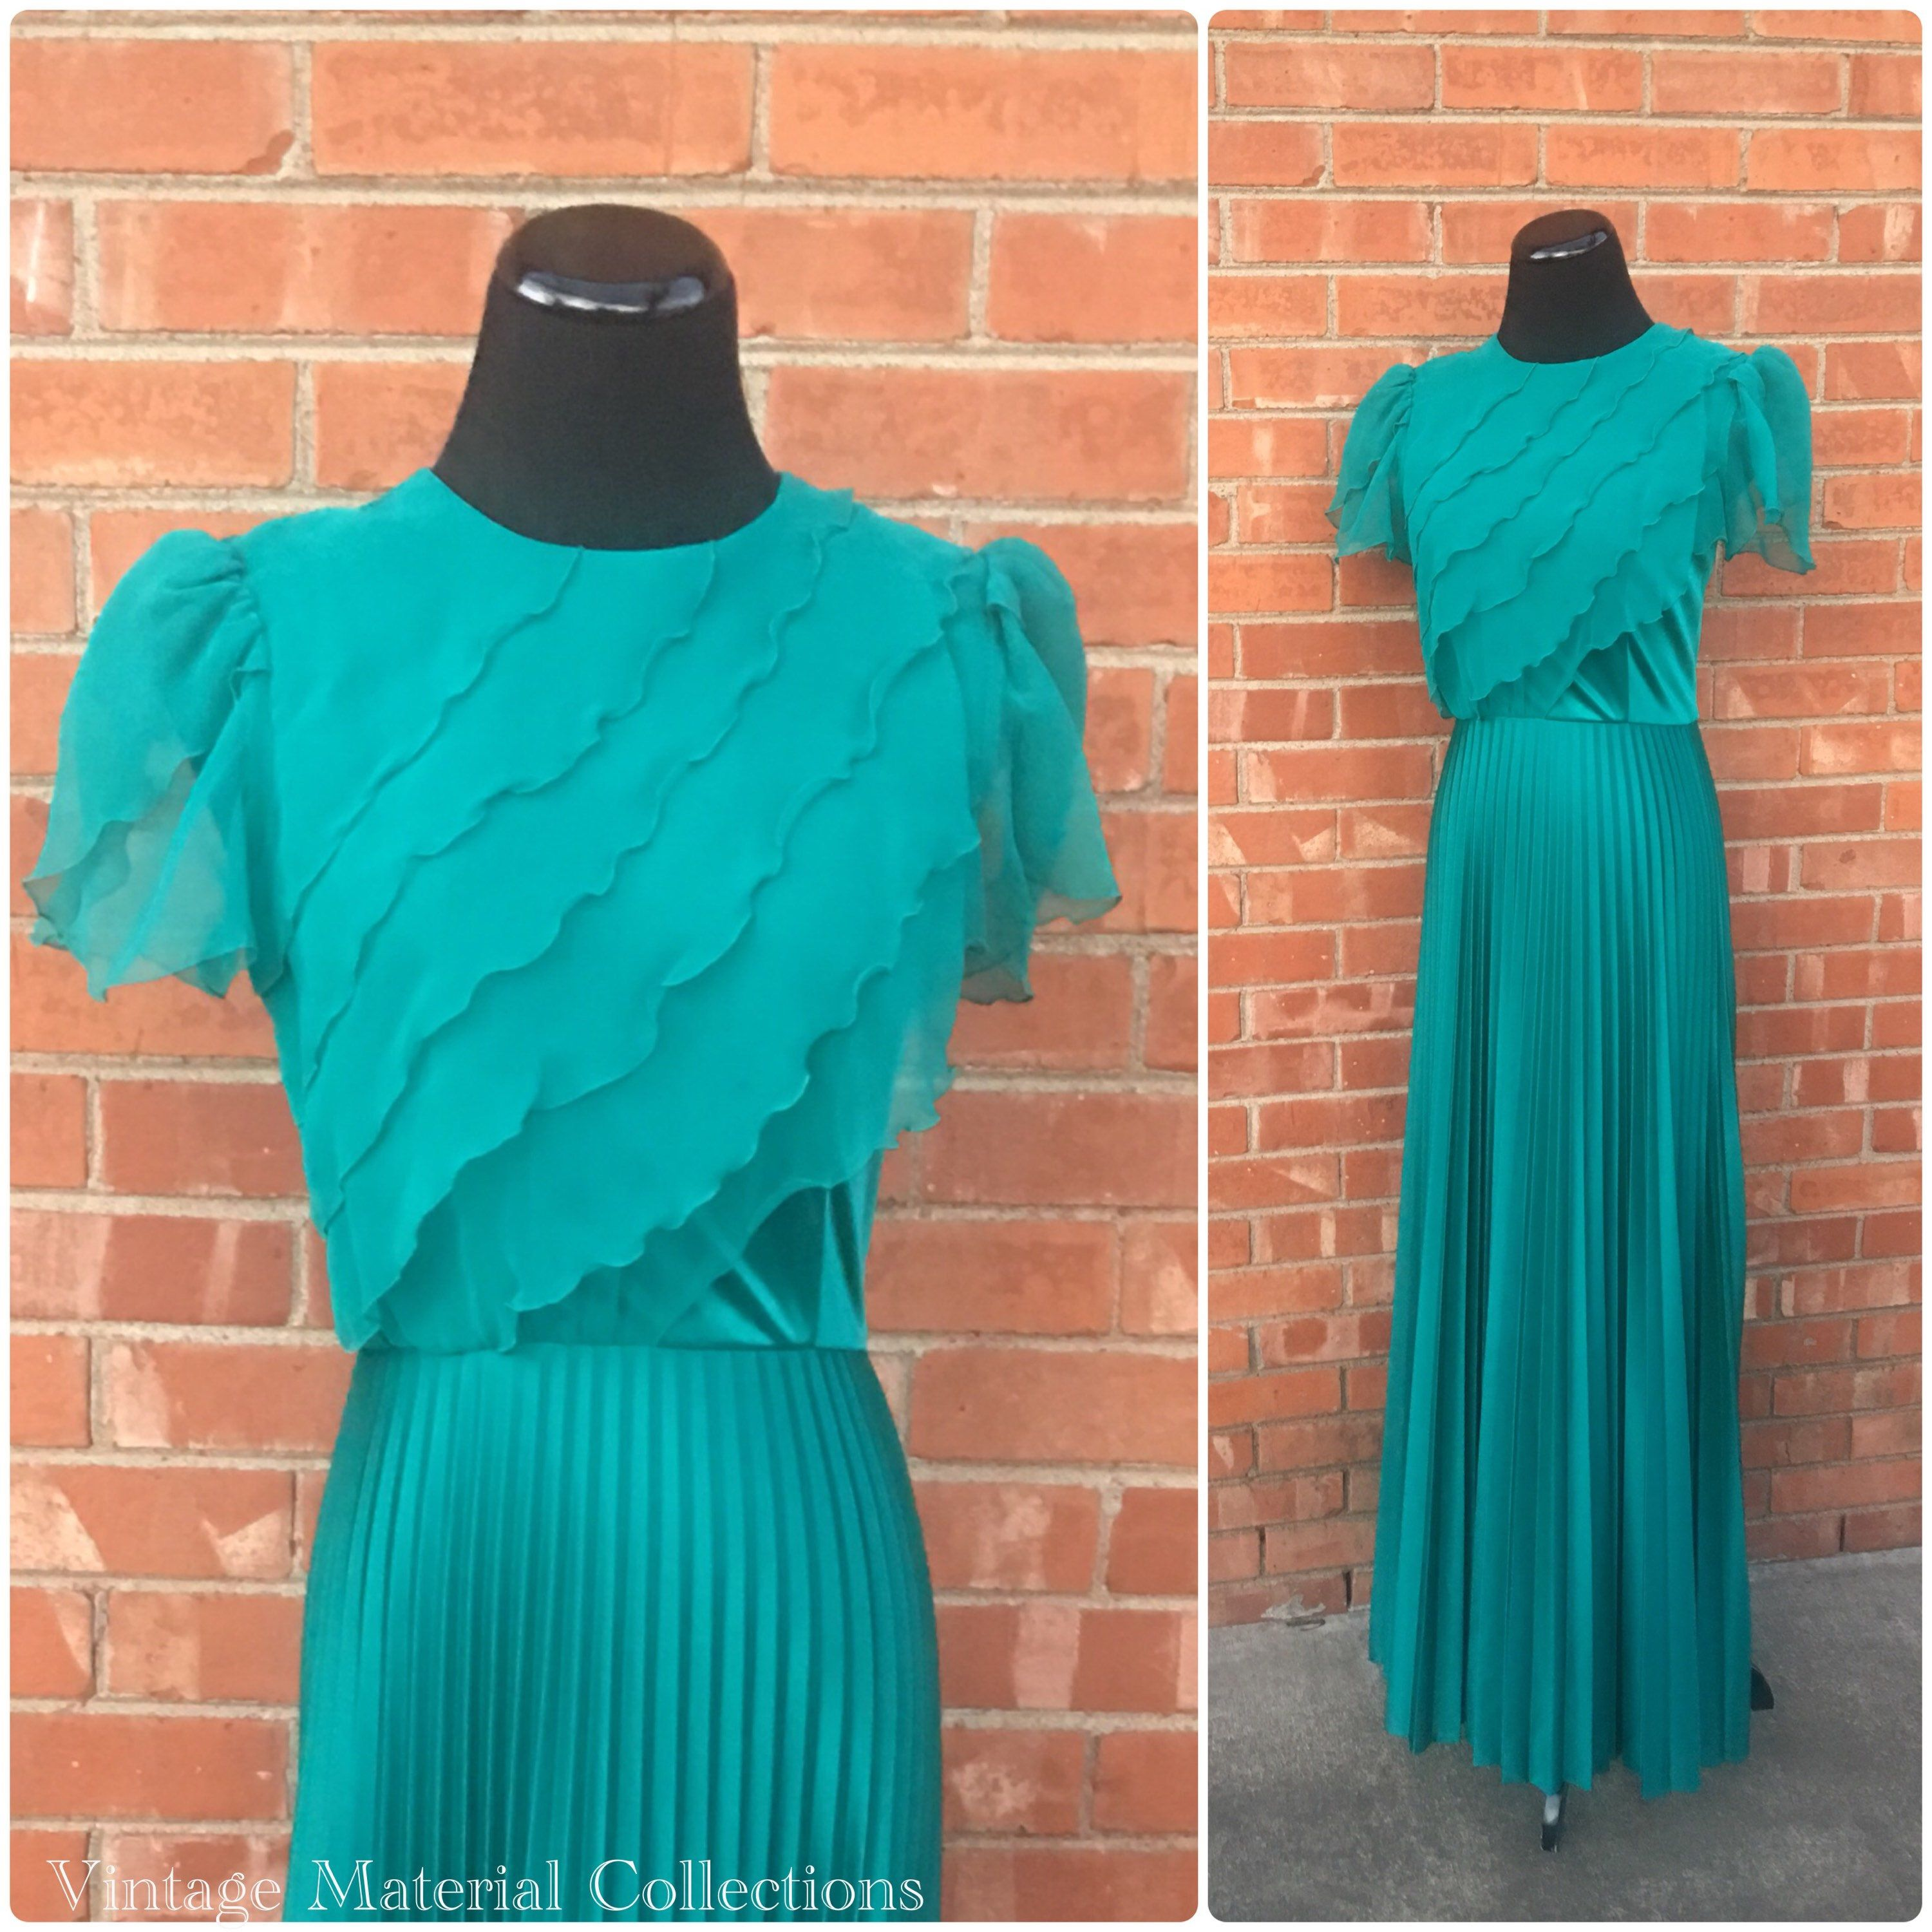 S formal dress sm material collections u vintage emerald